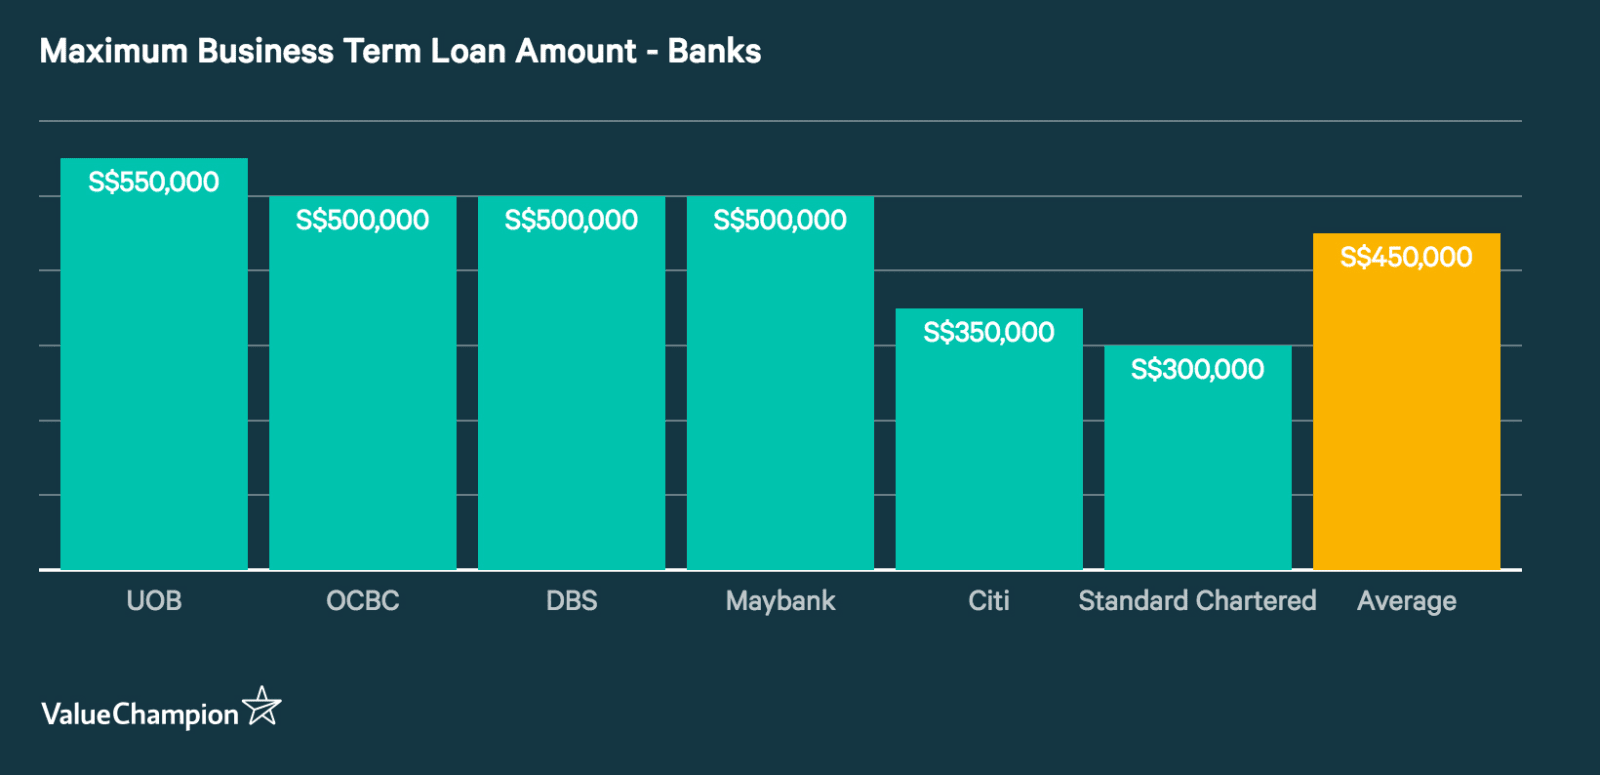 Column graph displaying the maximum business term loan amounts from major banks in Singapore. UOB offers the largest (S$550,000), Standard Chartered offers the smallest (S$300,000) and the average is (S$450,000)